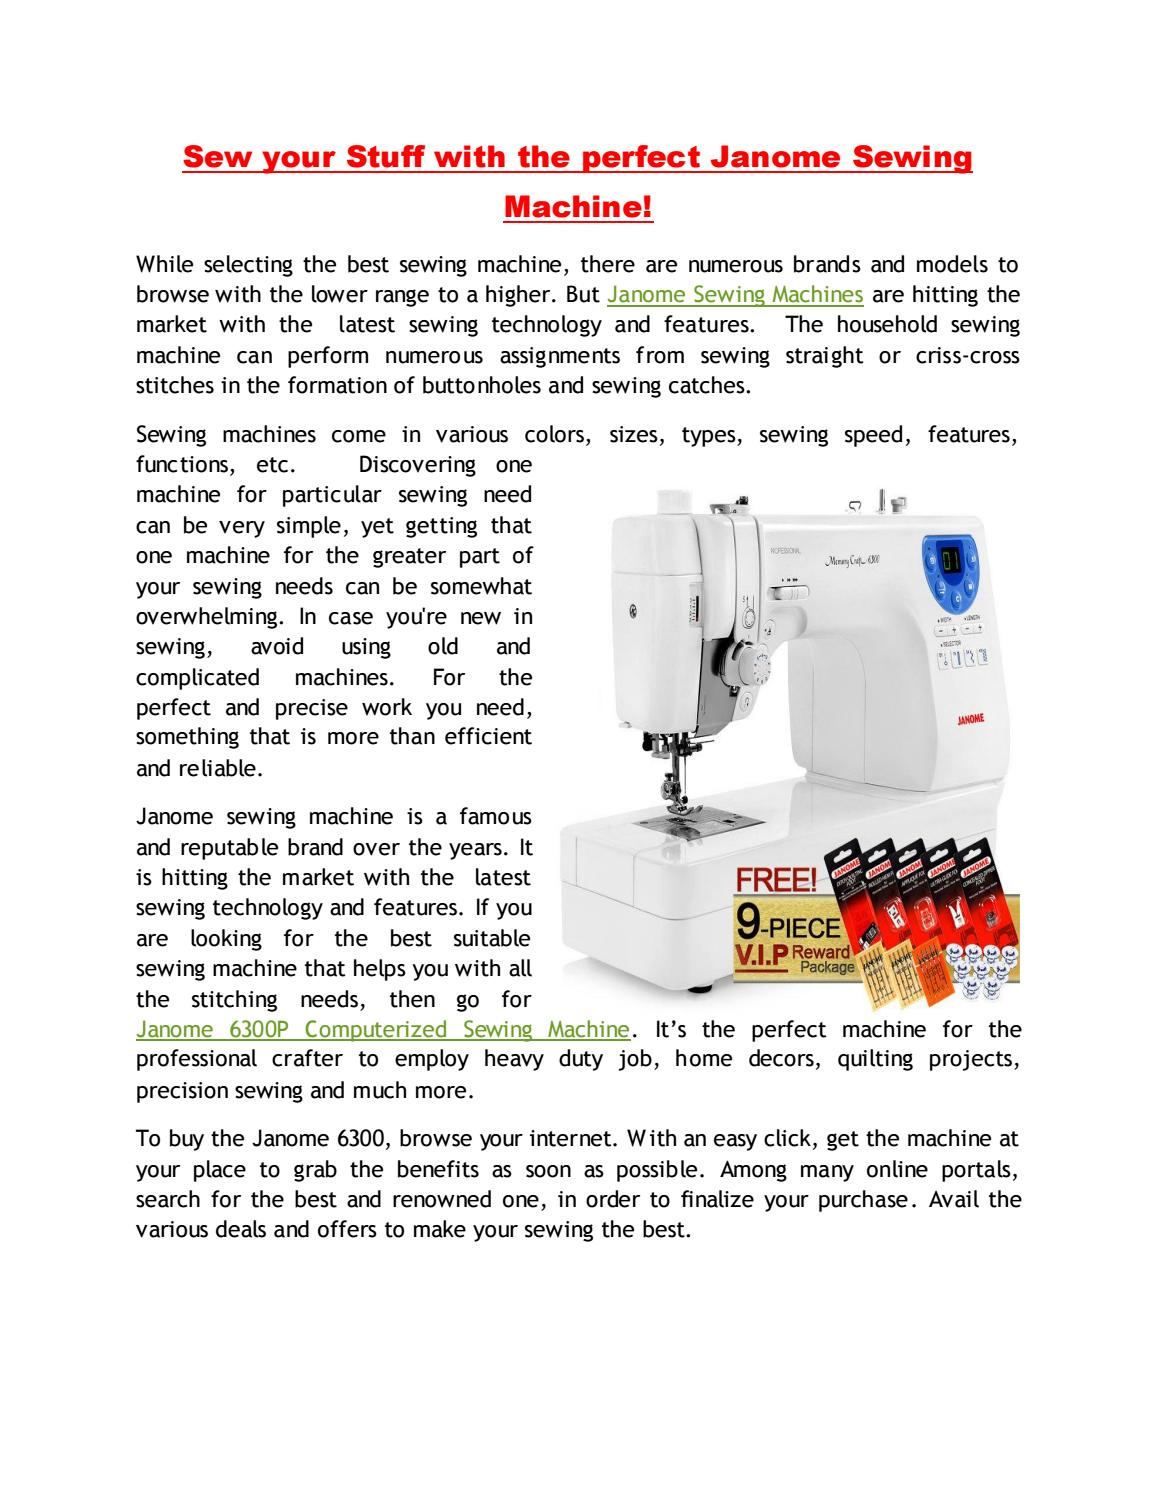 Sew Your Stuff With Perfect Janome Sewing Machine By Mr Vac And